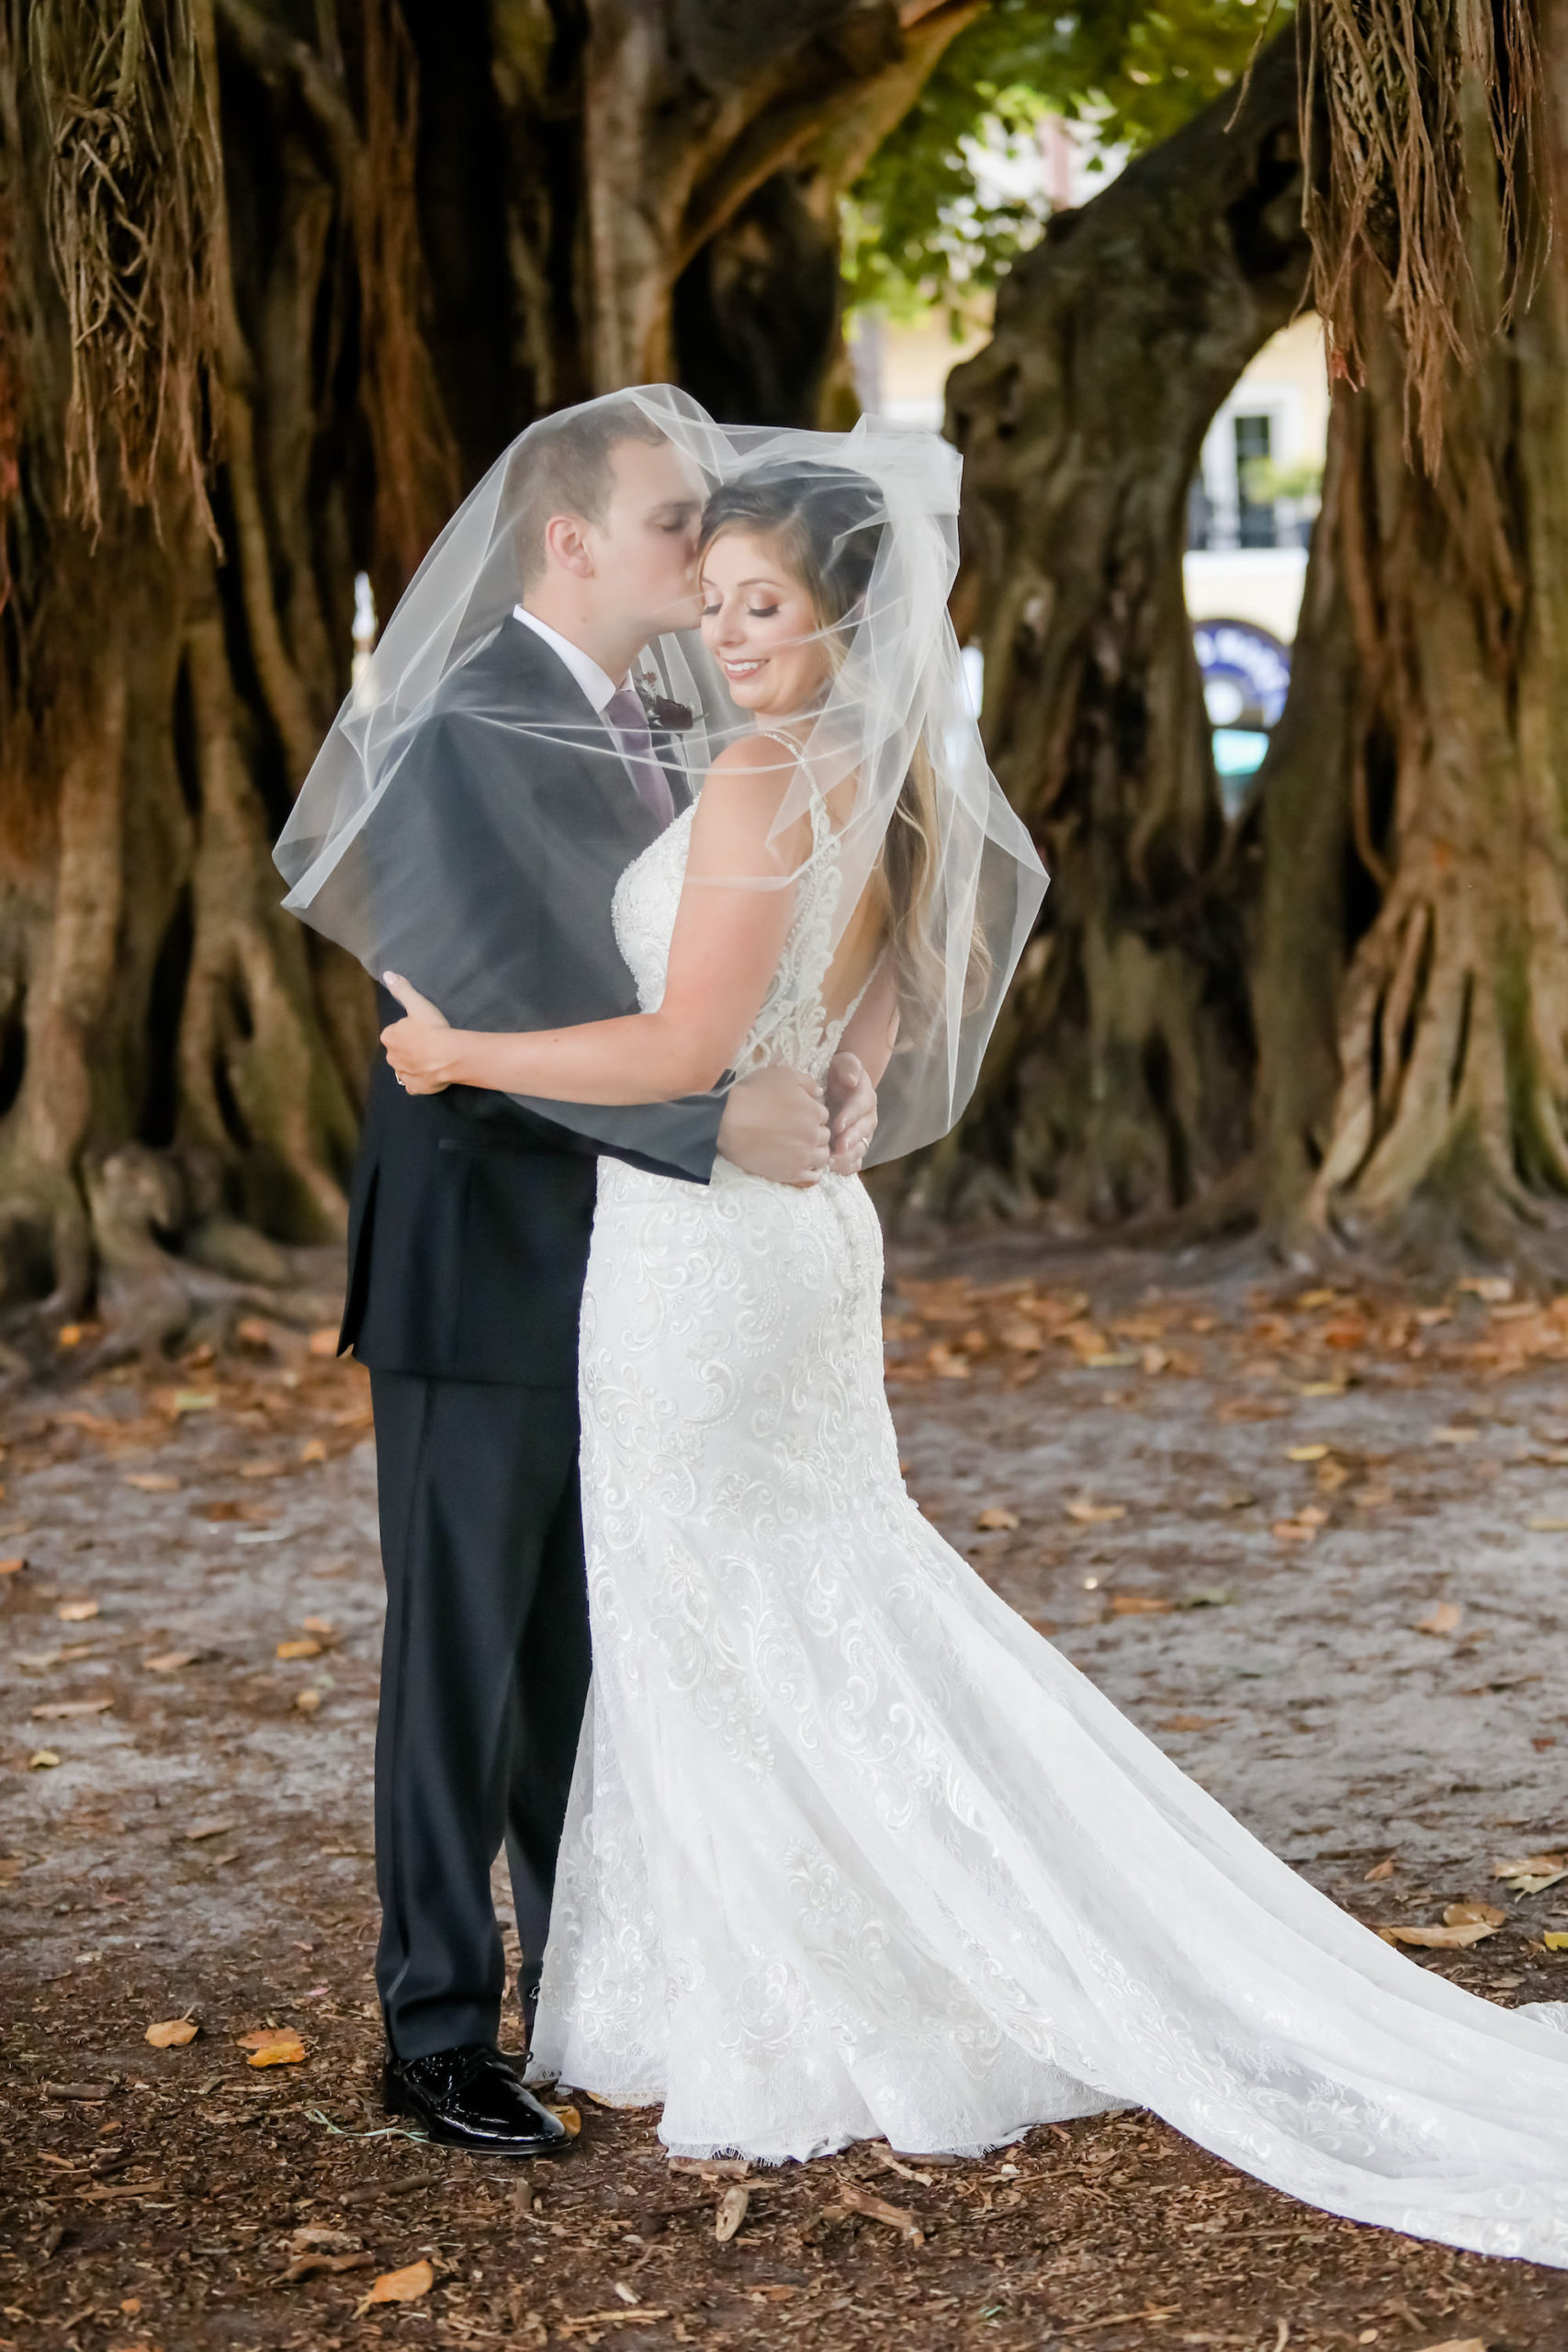 Creative Florida Bride and Groom Under Wedding Veil Embrace In Front of Banyan Trees in Straub Park Downtown St. Petersburg   Tampa Bay Hair and Makeup Artist Michele Renee The Studio   Florida Wedding Photographer Lifelong Photography Studio